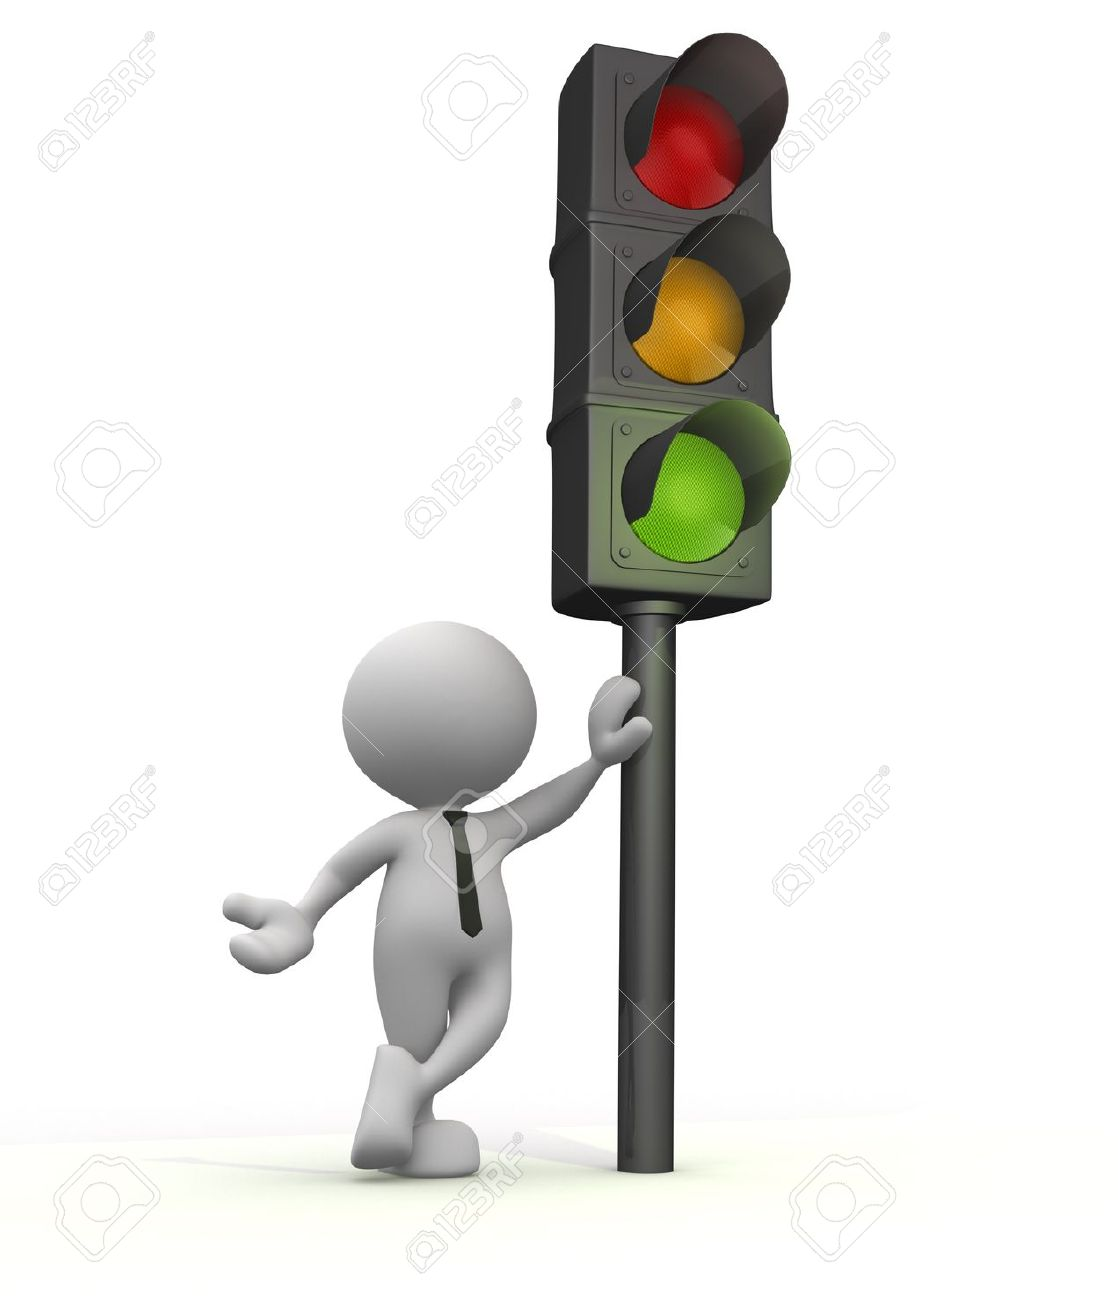 Image result for 3D TRAFFIC LIGHT